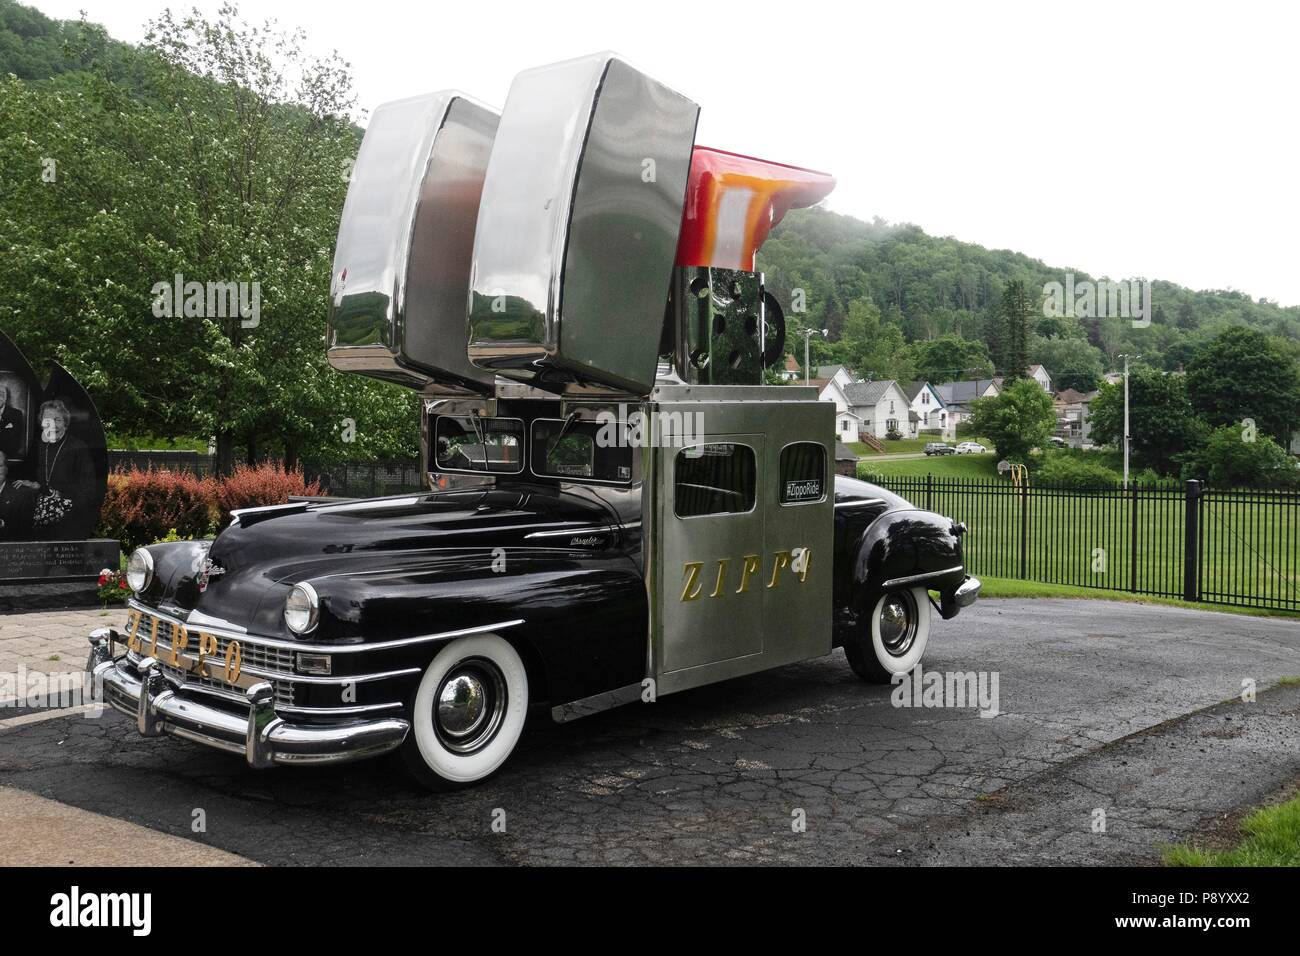 The Zippo car, created from a 1947 Chrysler Saratoga automobile, is photographed in front of zippo Museum in Bradford Pennsylvania. - Stock Image